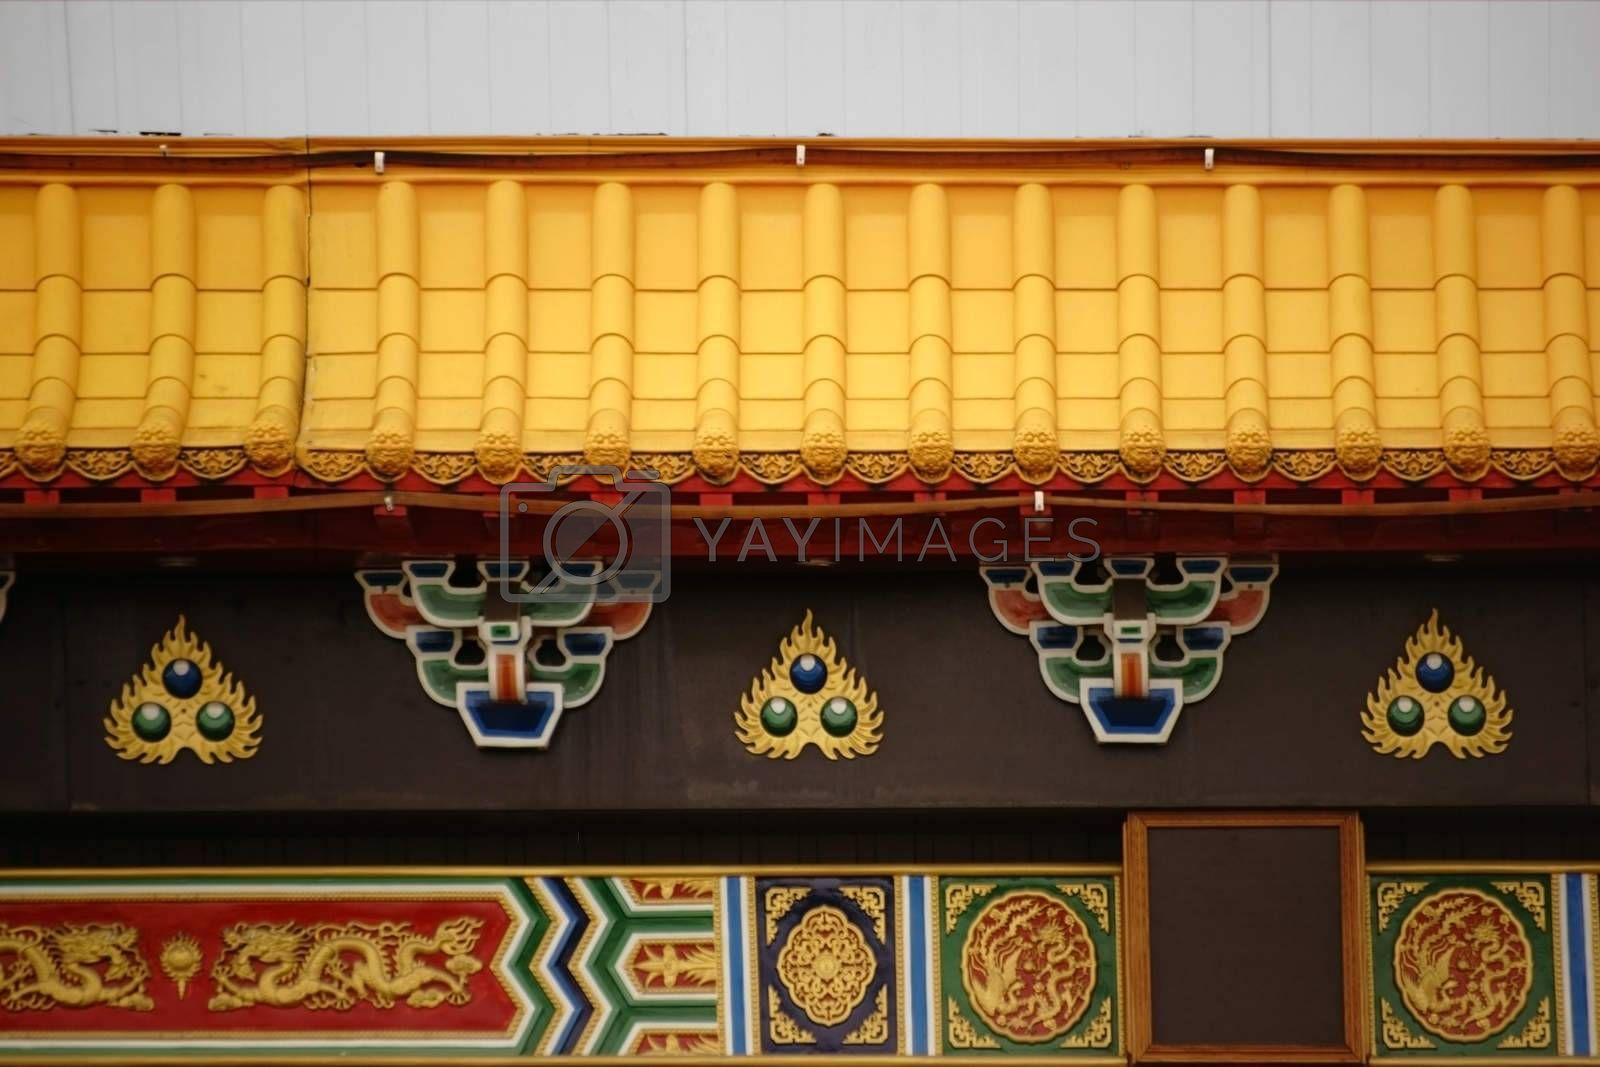 The ornate facade of a Chinese restaurant with dragons� ornaments and symbols.